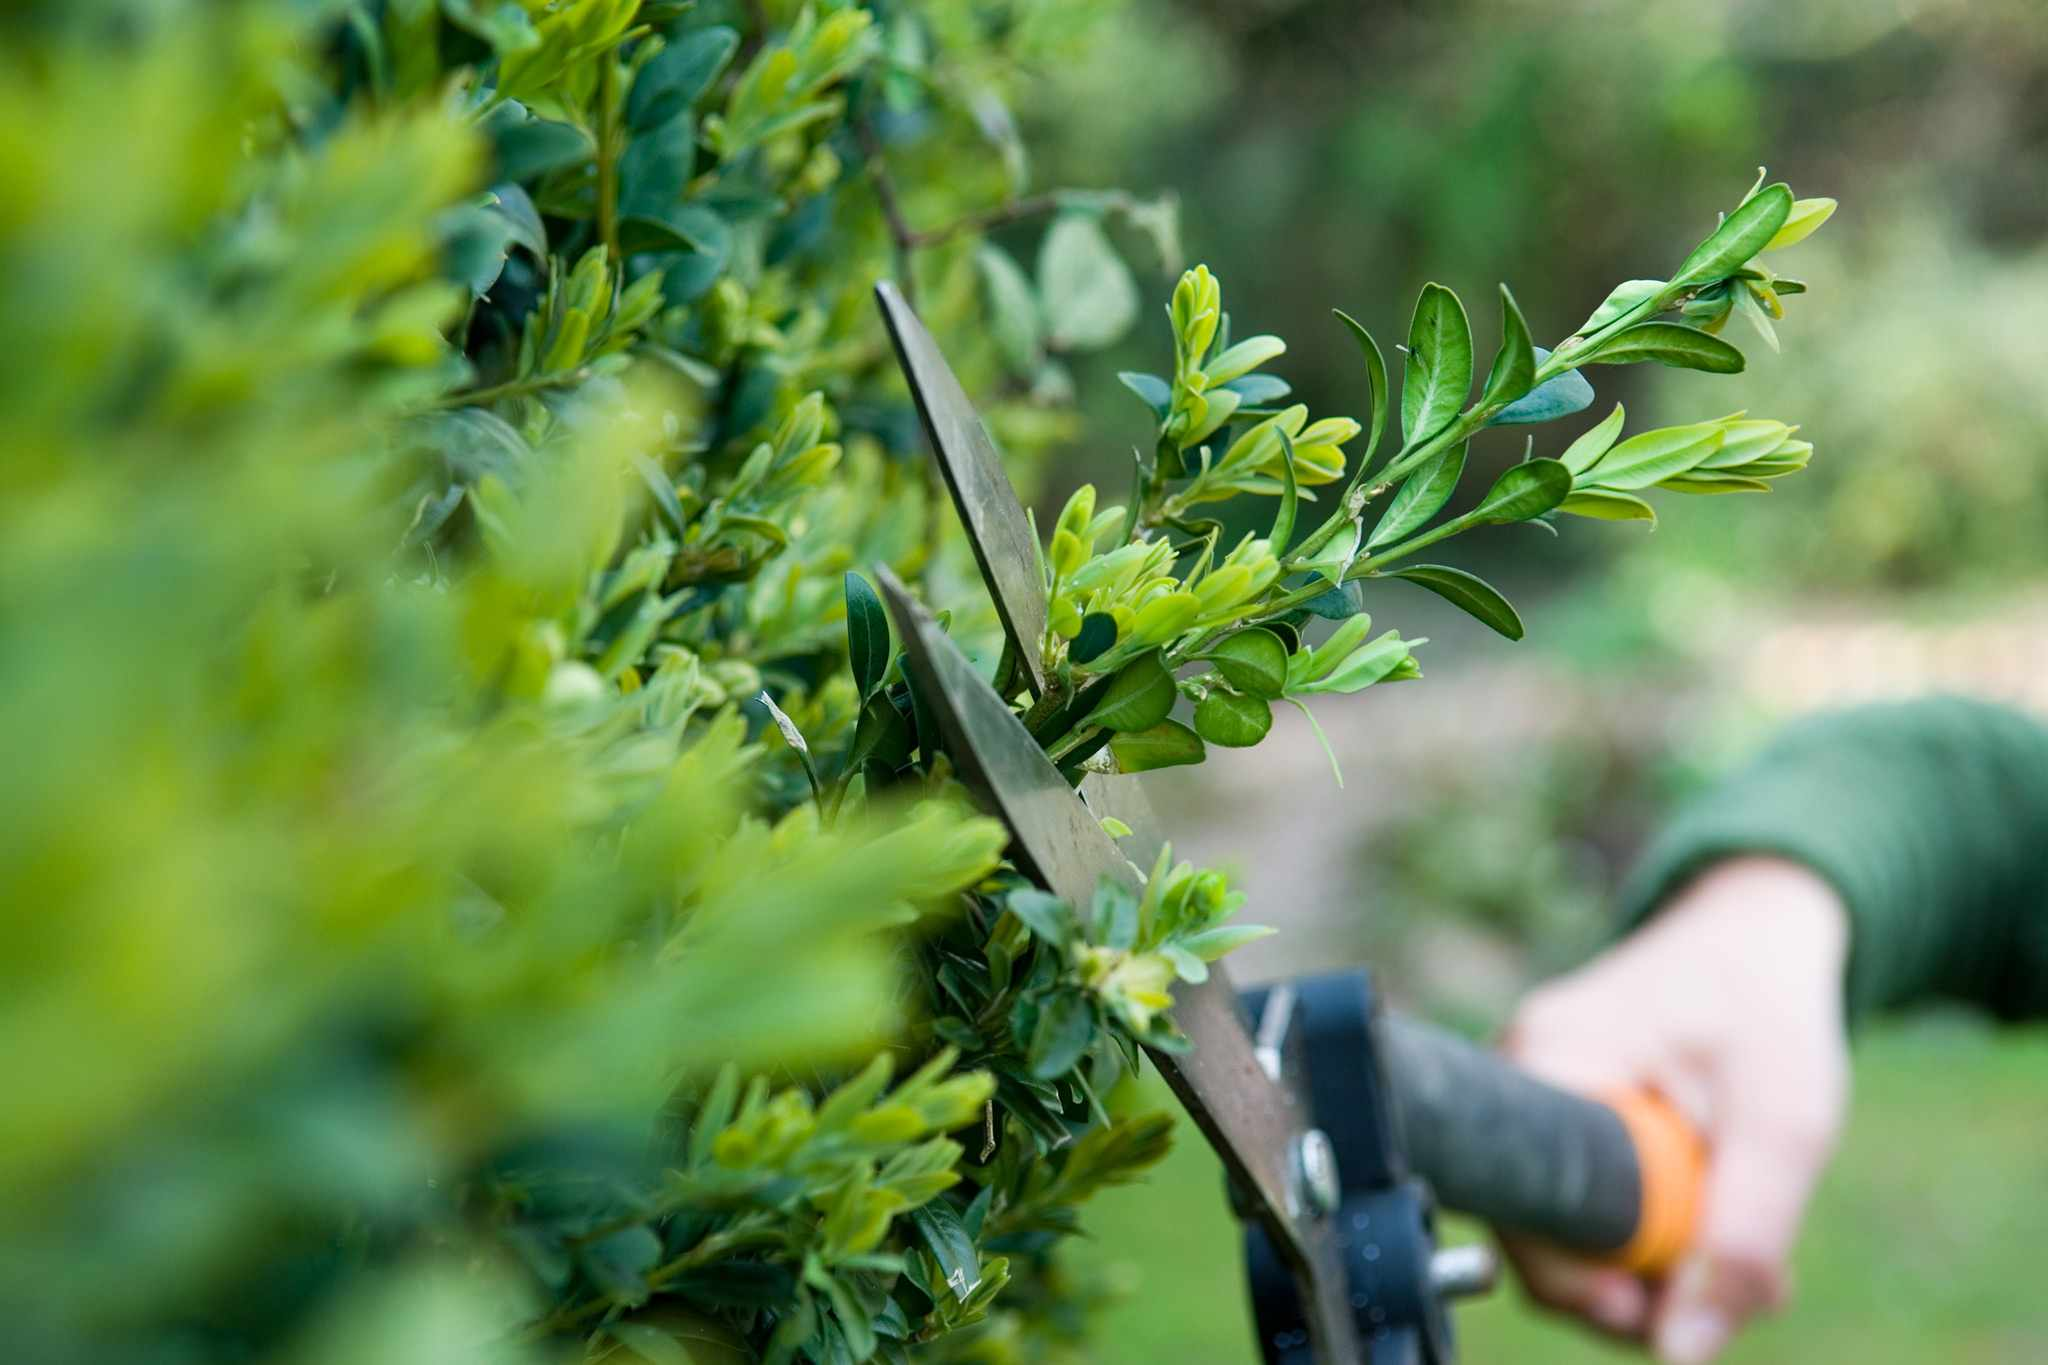 Pruning an evergreen hedge